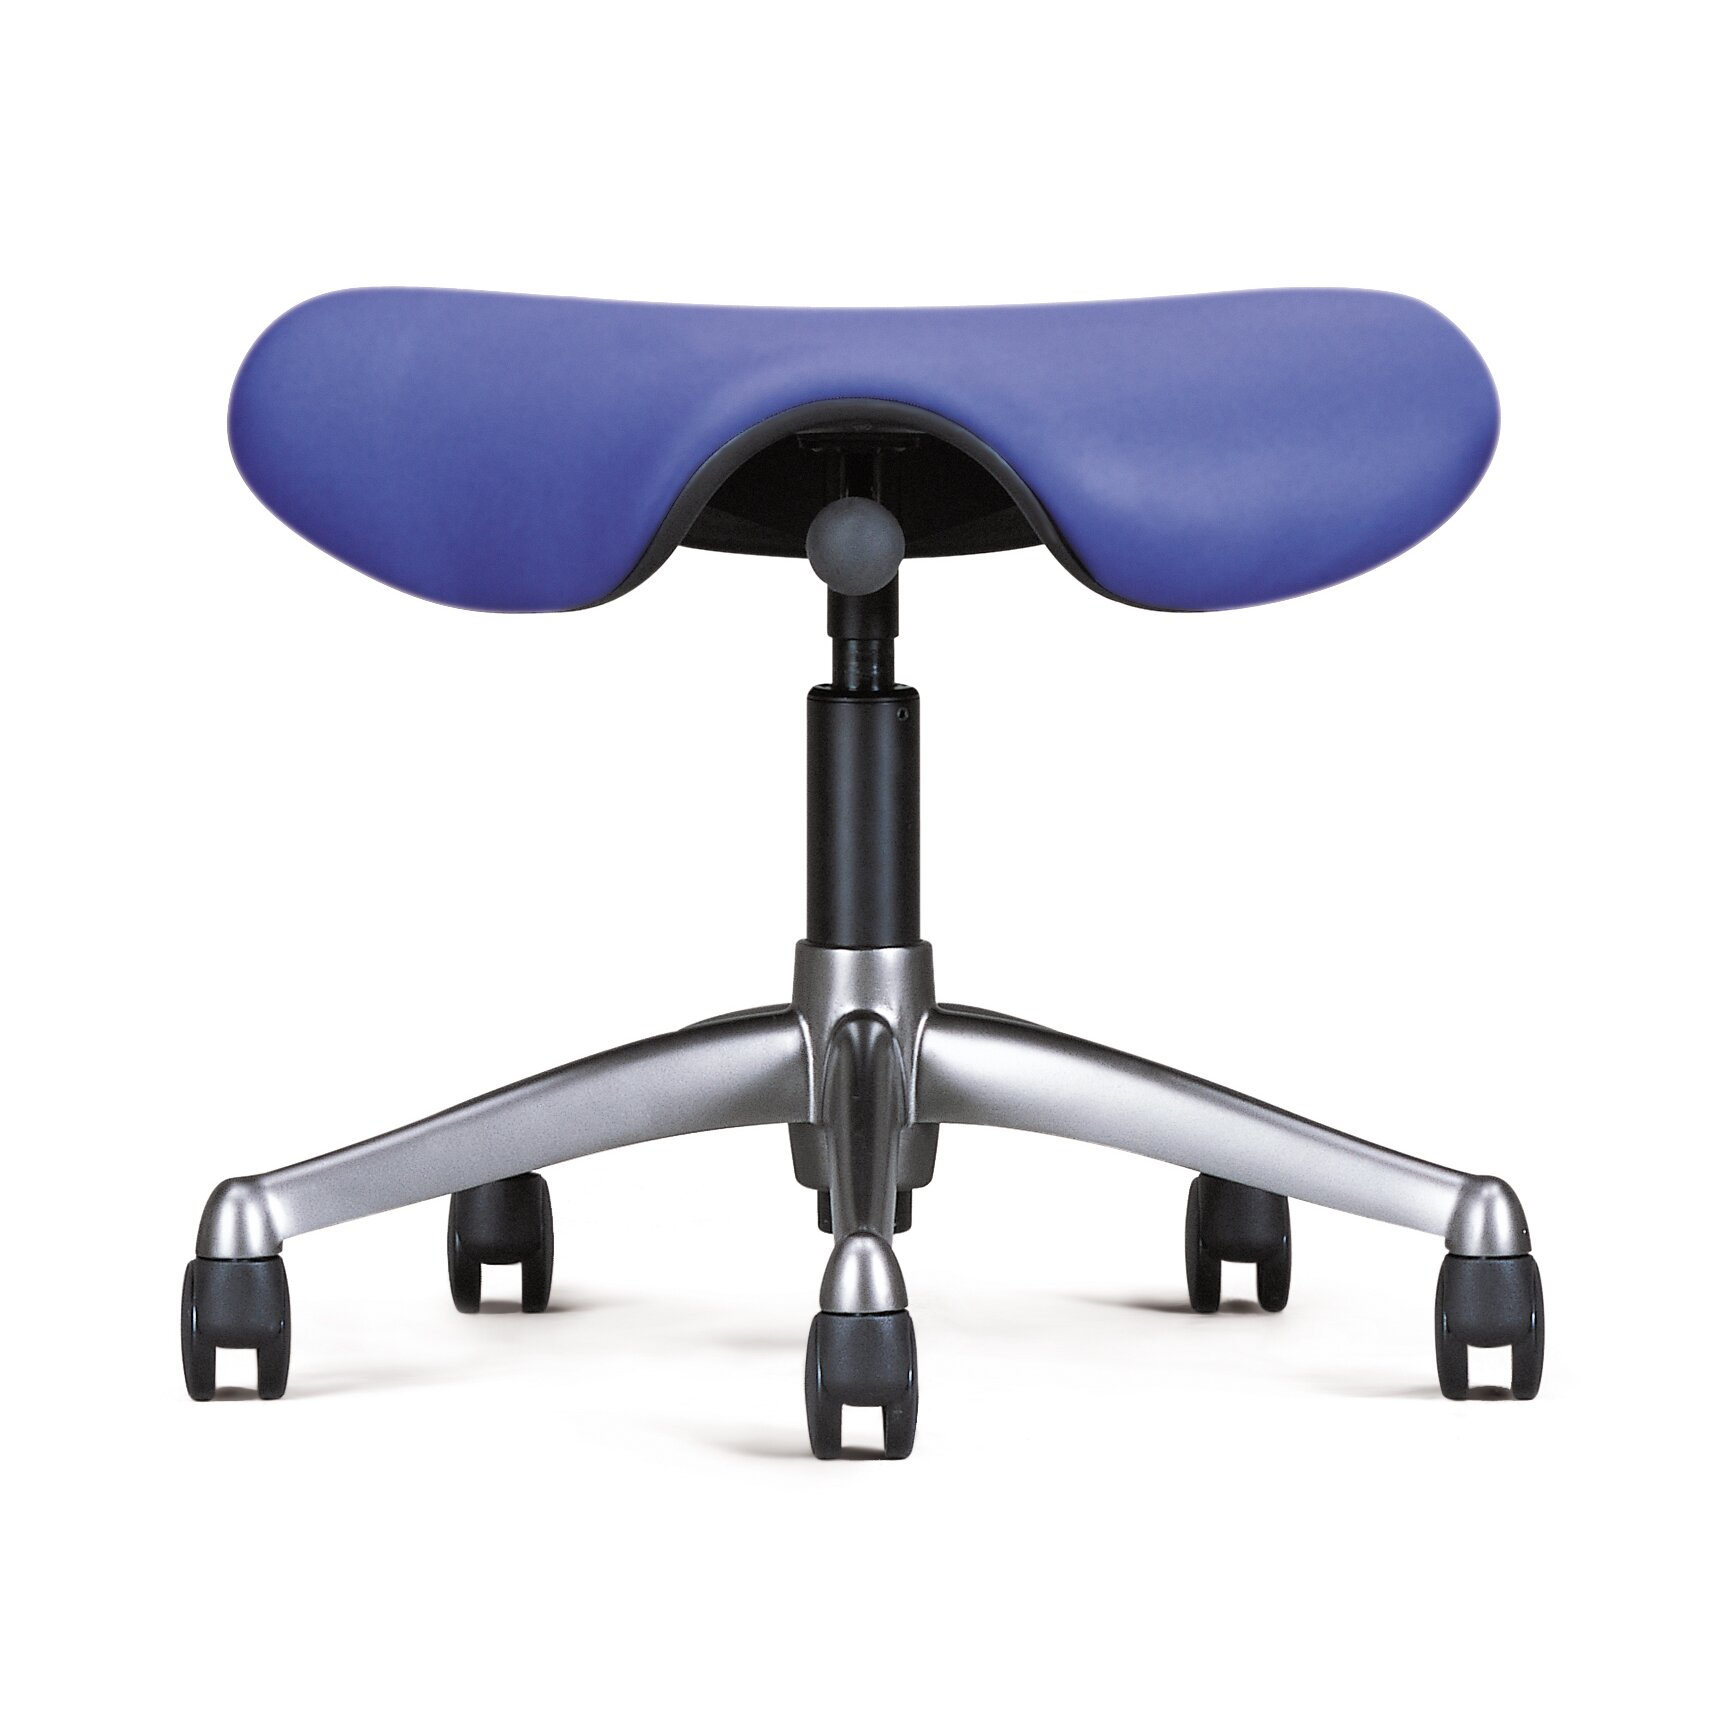 ergonomic chair betterposture saddle chair. ergonomic chair betterposture saddle jobri height adjustable seat with casters l